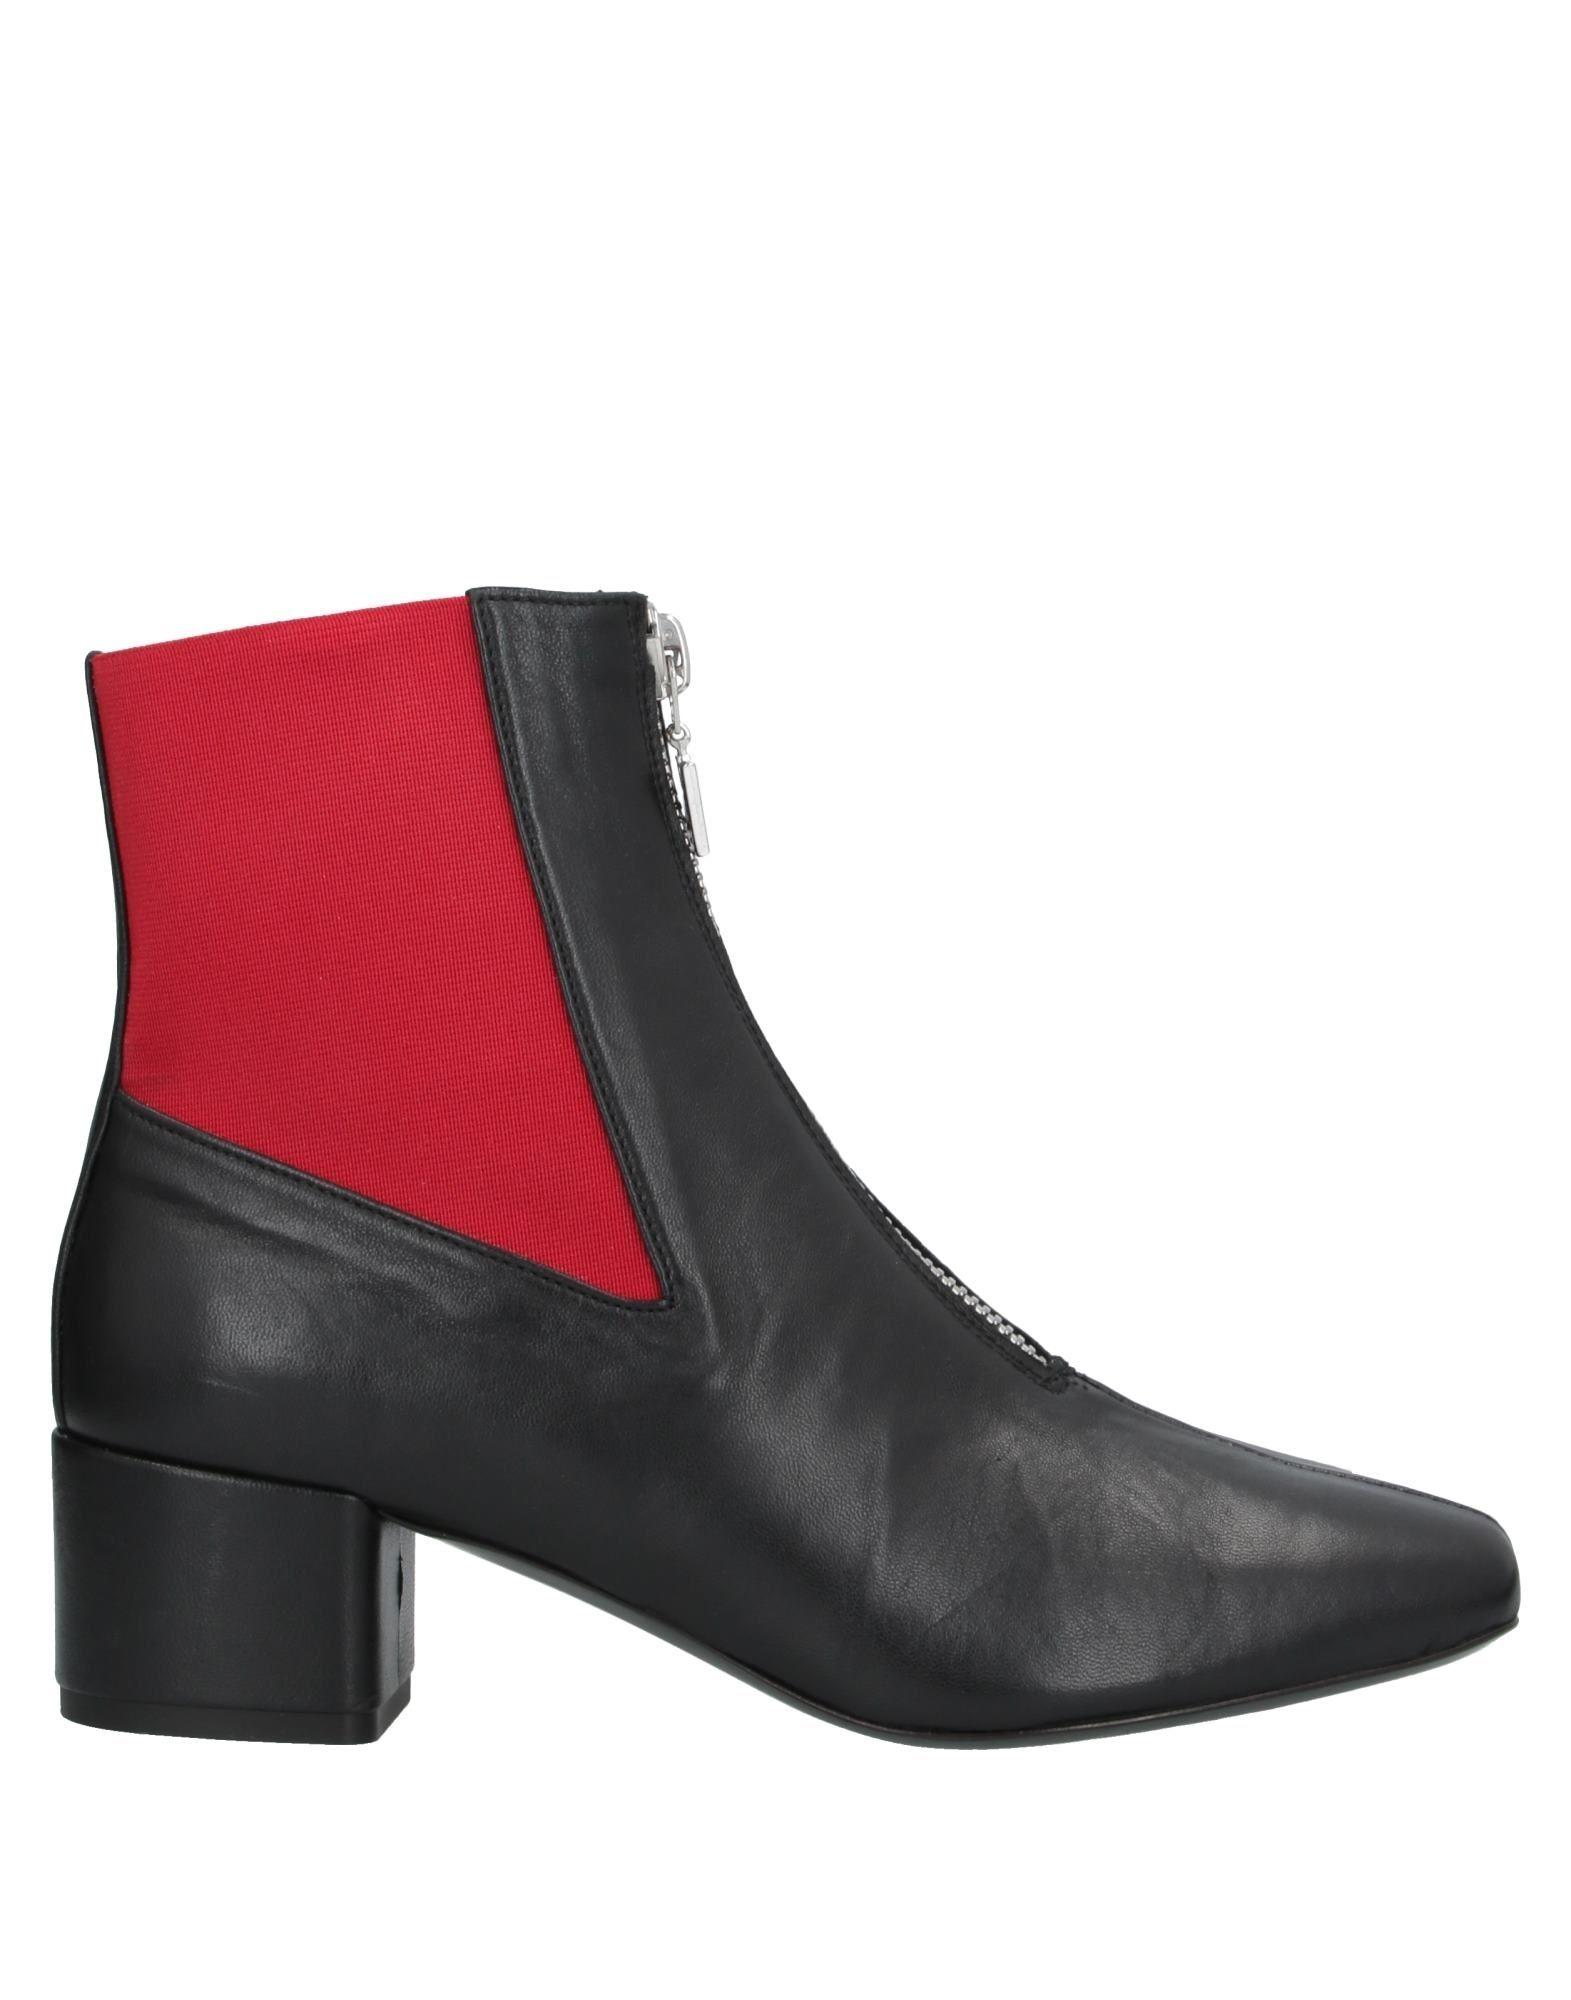 MSGM Leather Ankle Boots in Black - Lyst